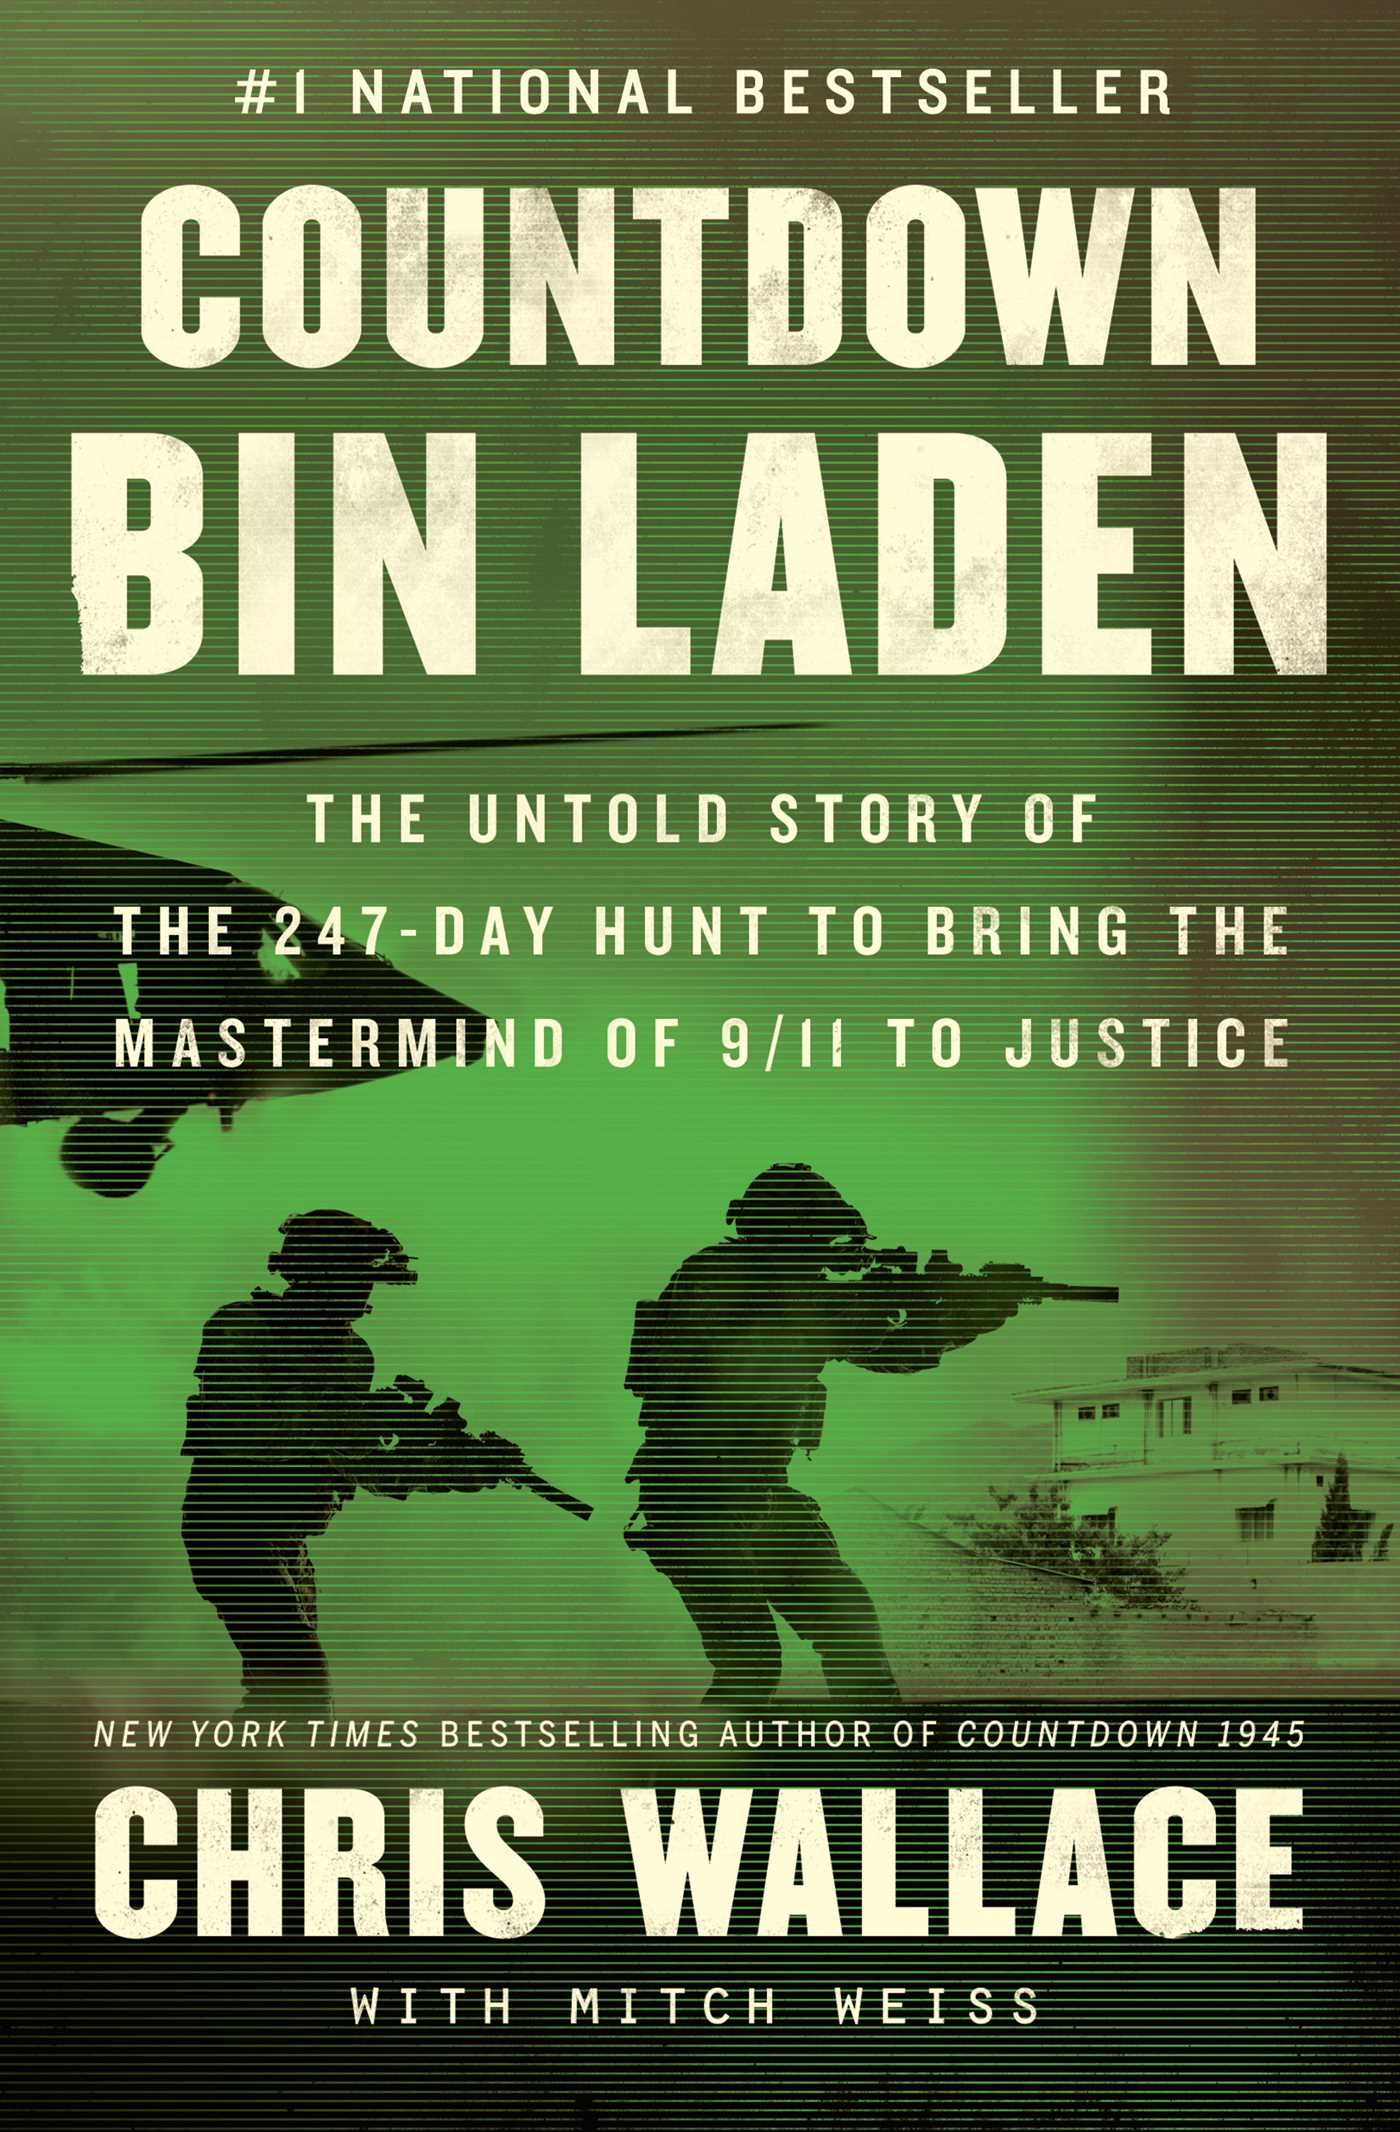 Countdown bin Laden The Untold Story of the 247-Day Hunt to Bring the Mastermind of 9/11 to Justice